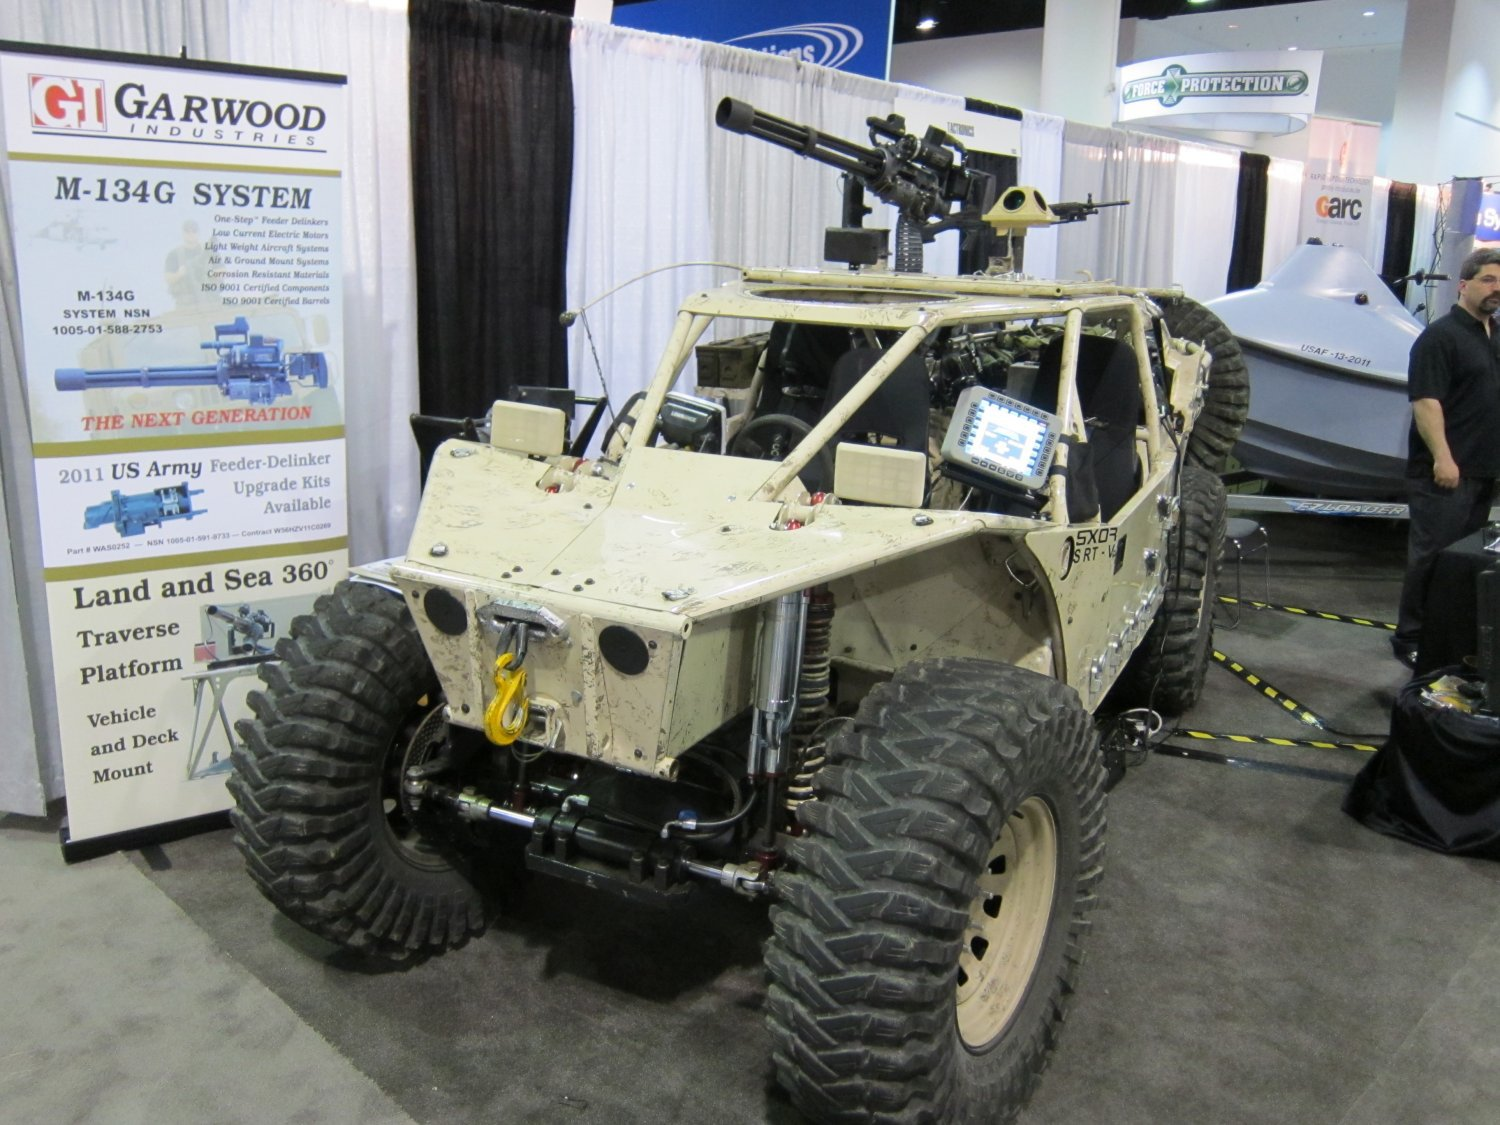 Garwood Industries M 134G Gatling Gun Minigun System SOFIC 2011 DefenseReview DR 5 BC Customs (BCC) Search and Rescue Tactical Vehicle 5 (SRTV 5) Baja Racing Type All Terrain Combat Vehicle Armed/Weaponized with 7.62mm NATO Garwood Industries (GI) M134G Minigun/Gatling Gun: SXOR Mobility Vehicles Go Tactical for Military Special Operations Forces (SOF) Missions